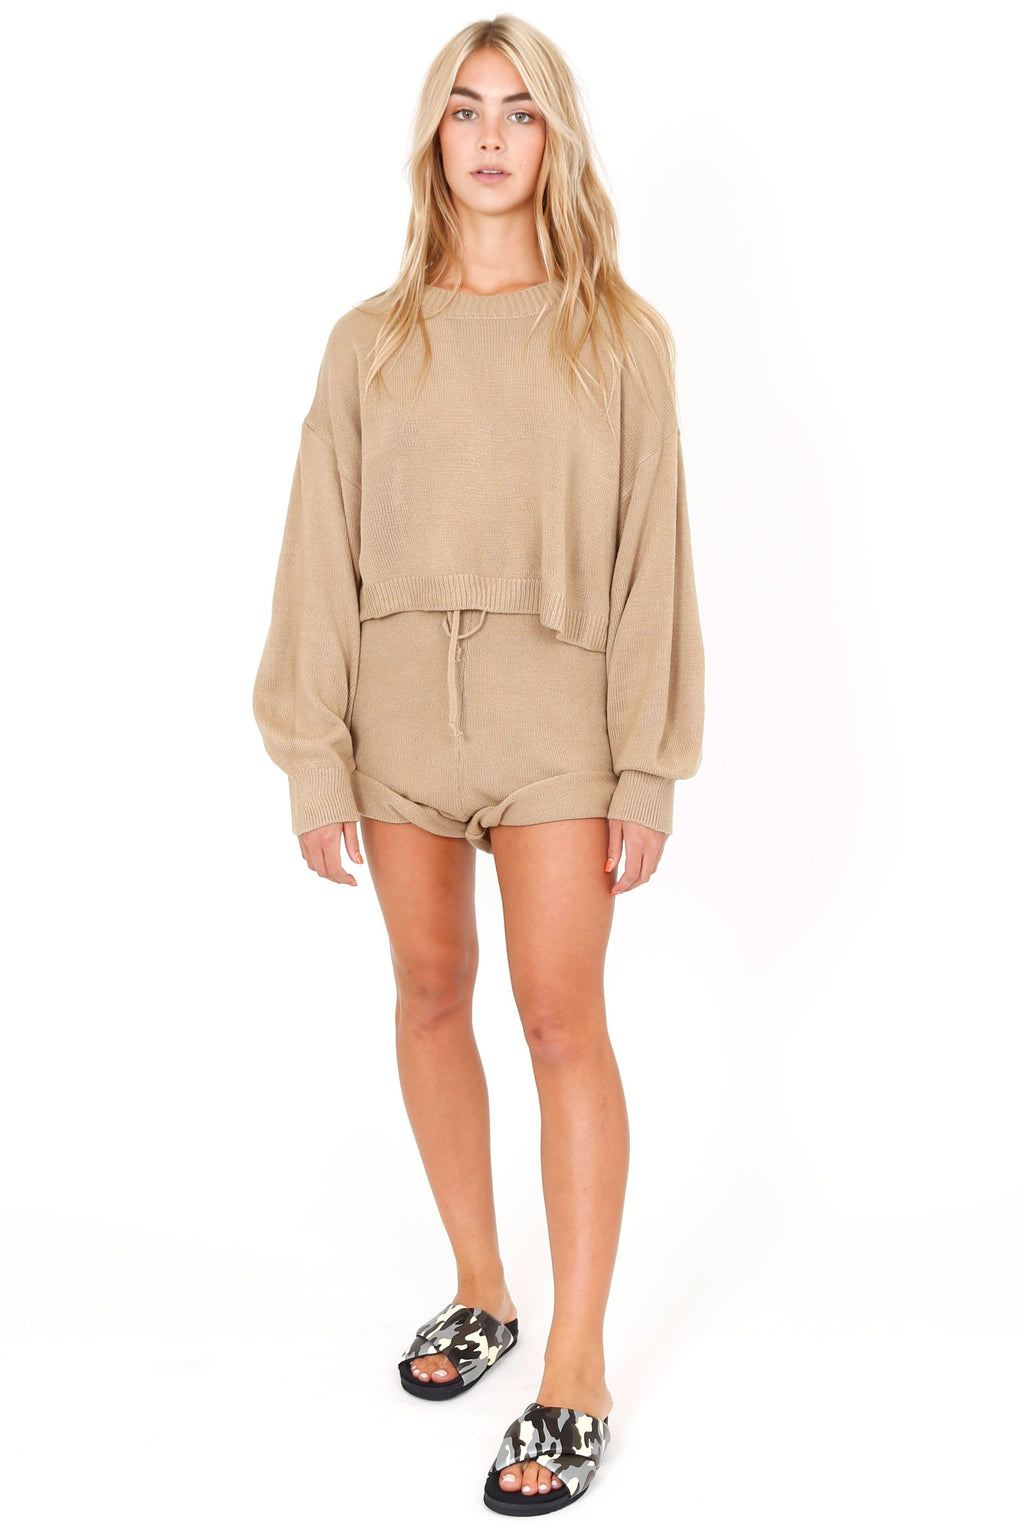 Butter Beige Sweater Shorts